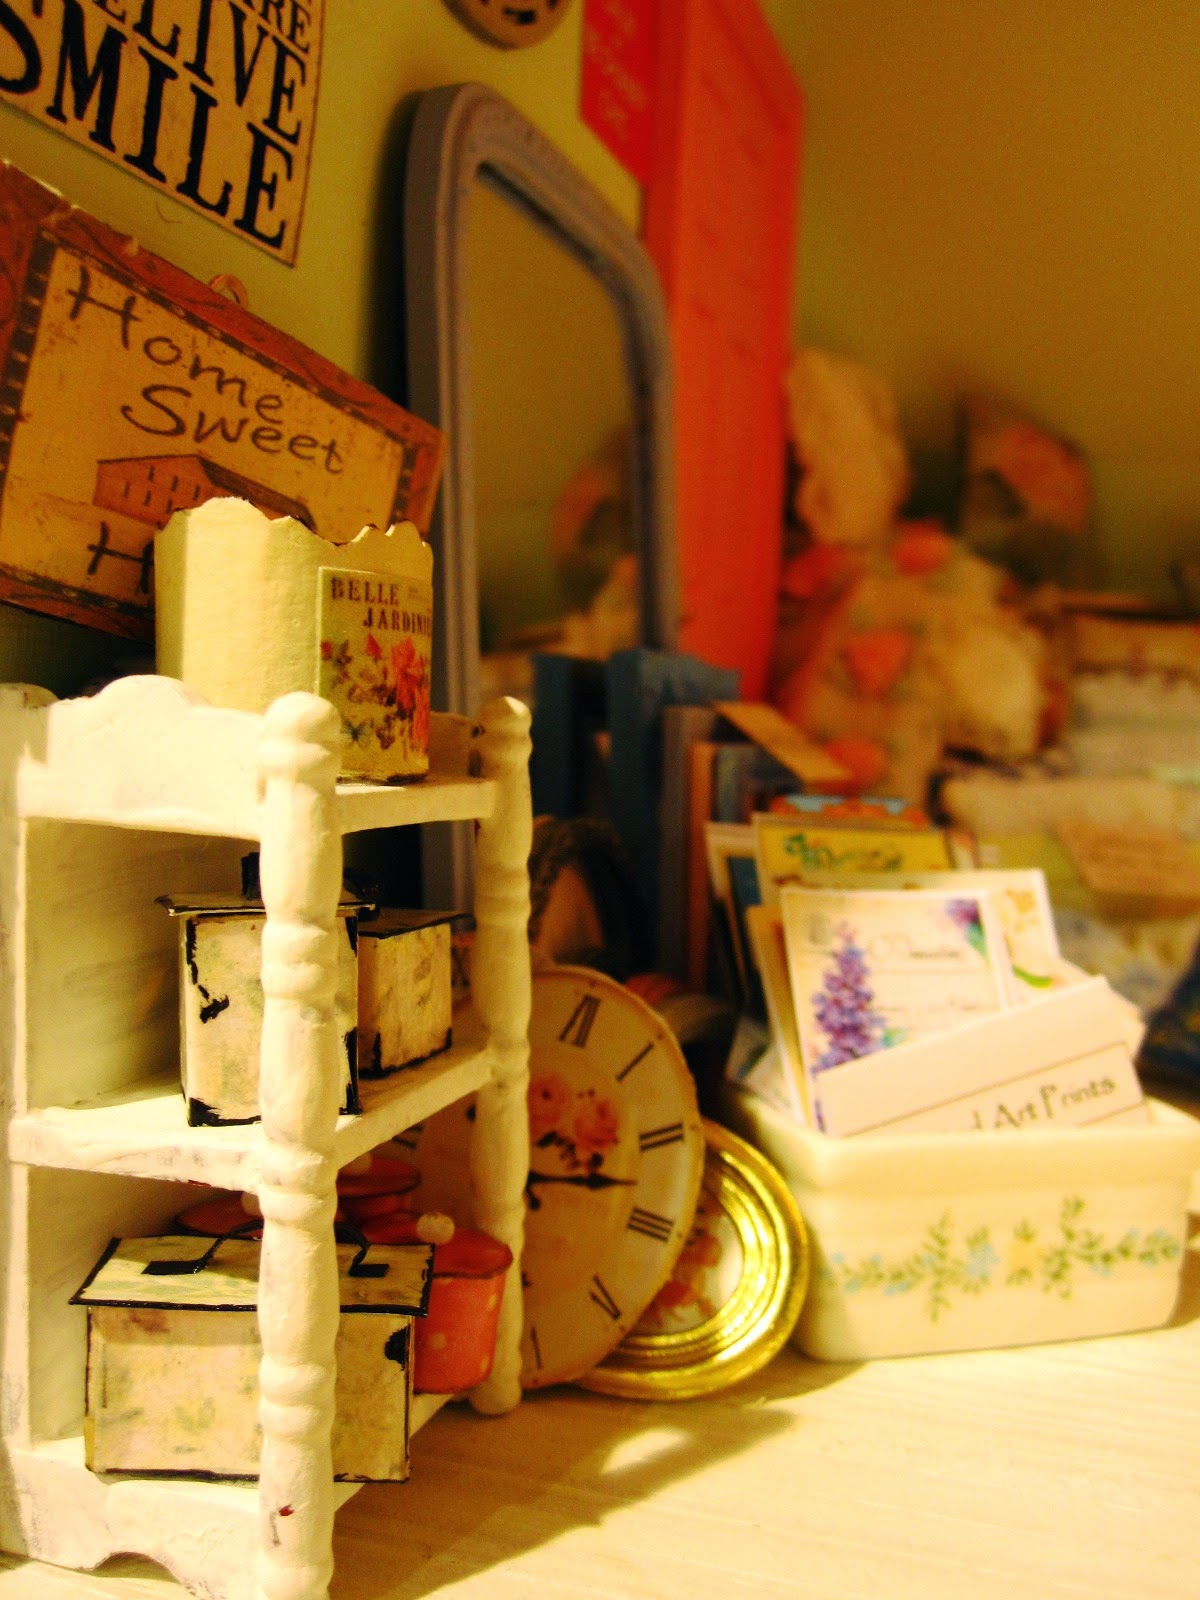 Modern miniature shabby chic shop close up with display shelves, wall pictures and sot furnishings.